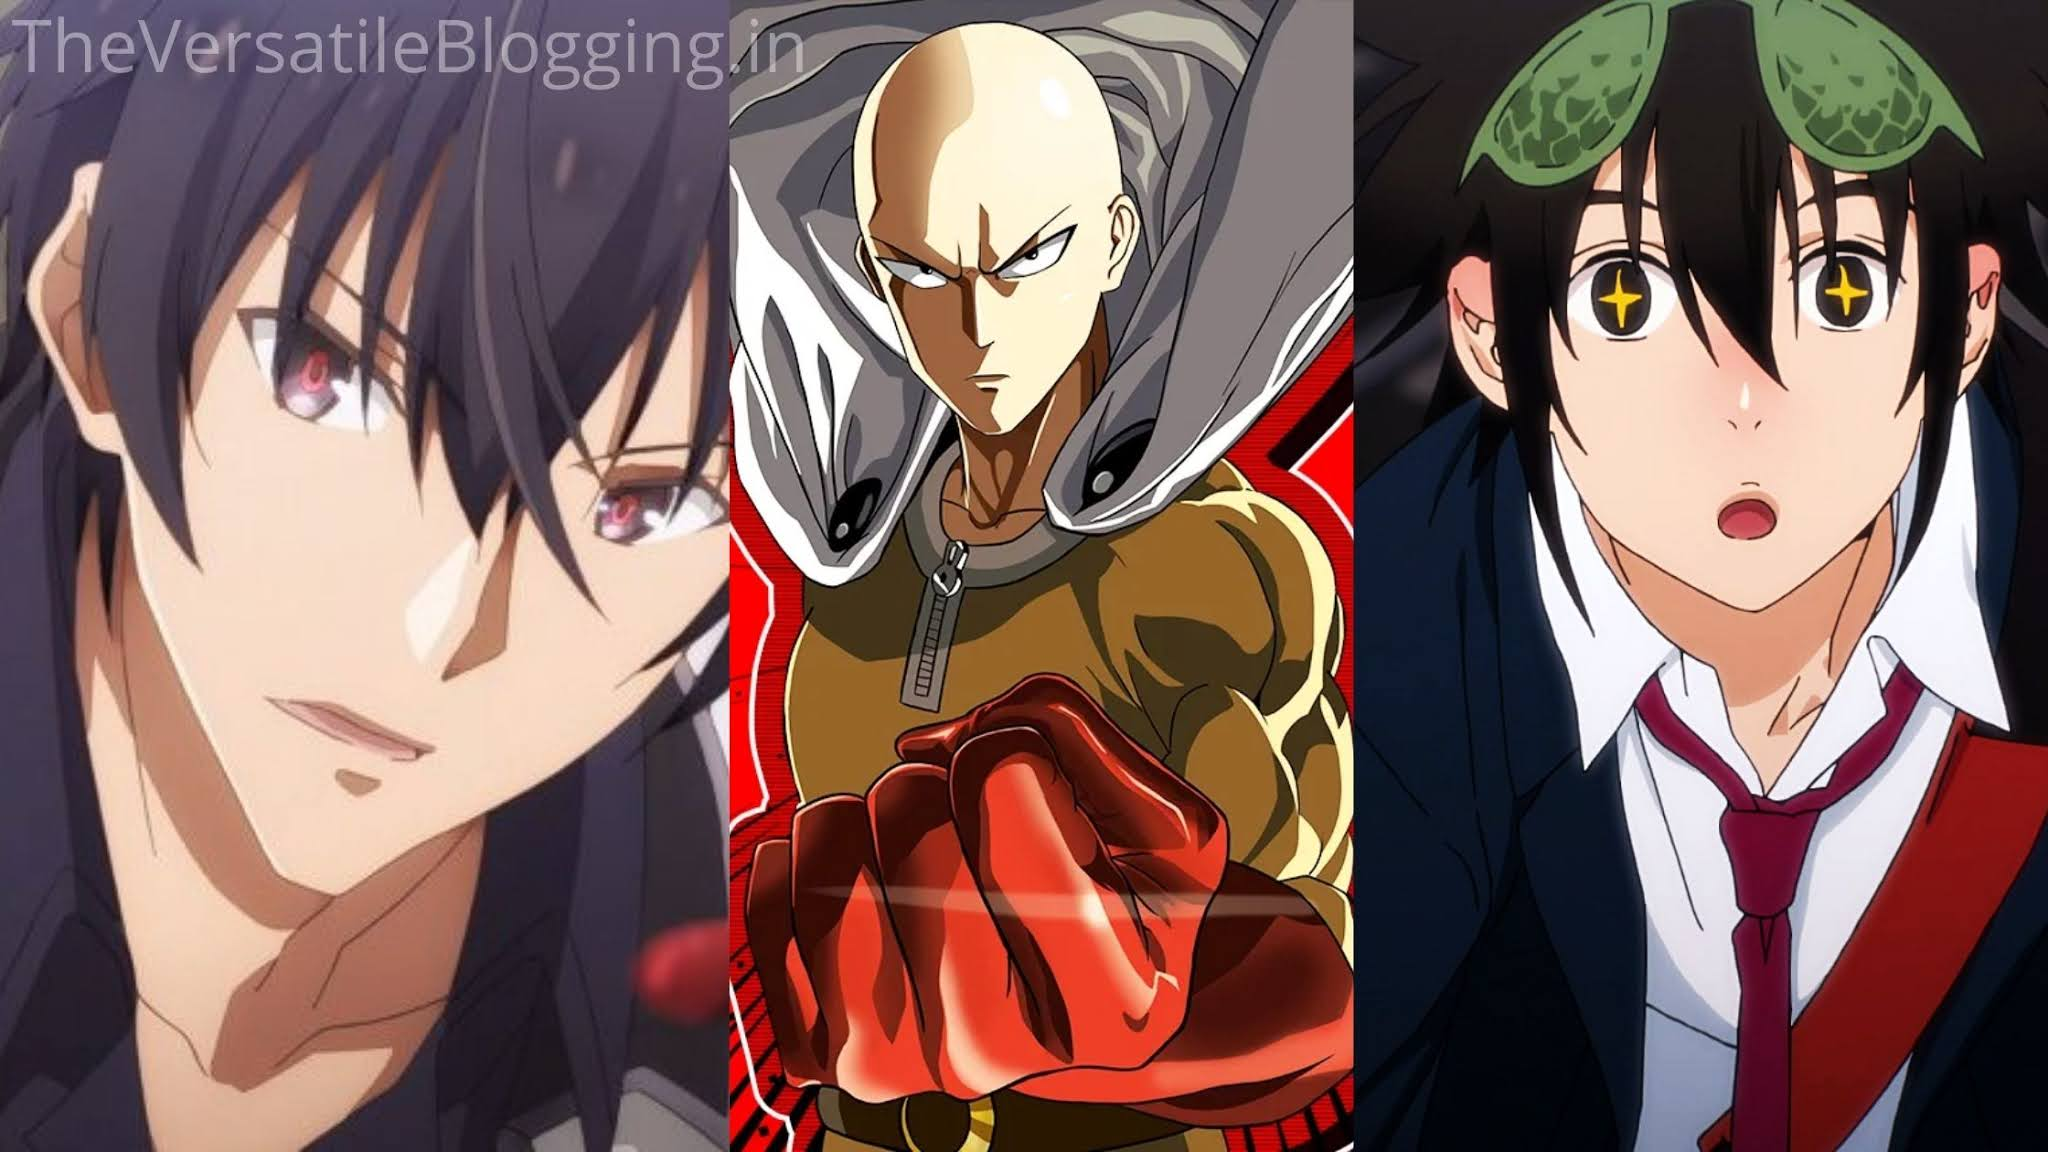 Top 5 Anime Like One Punch Man [Recommended] - TheVersatileBlogging